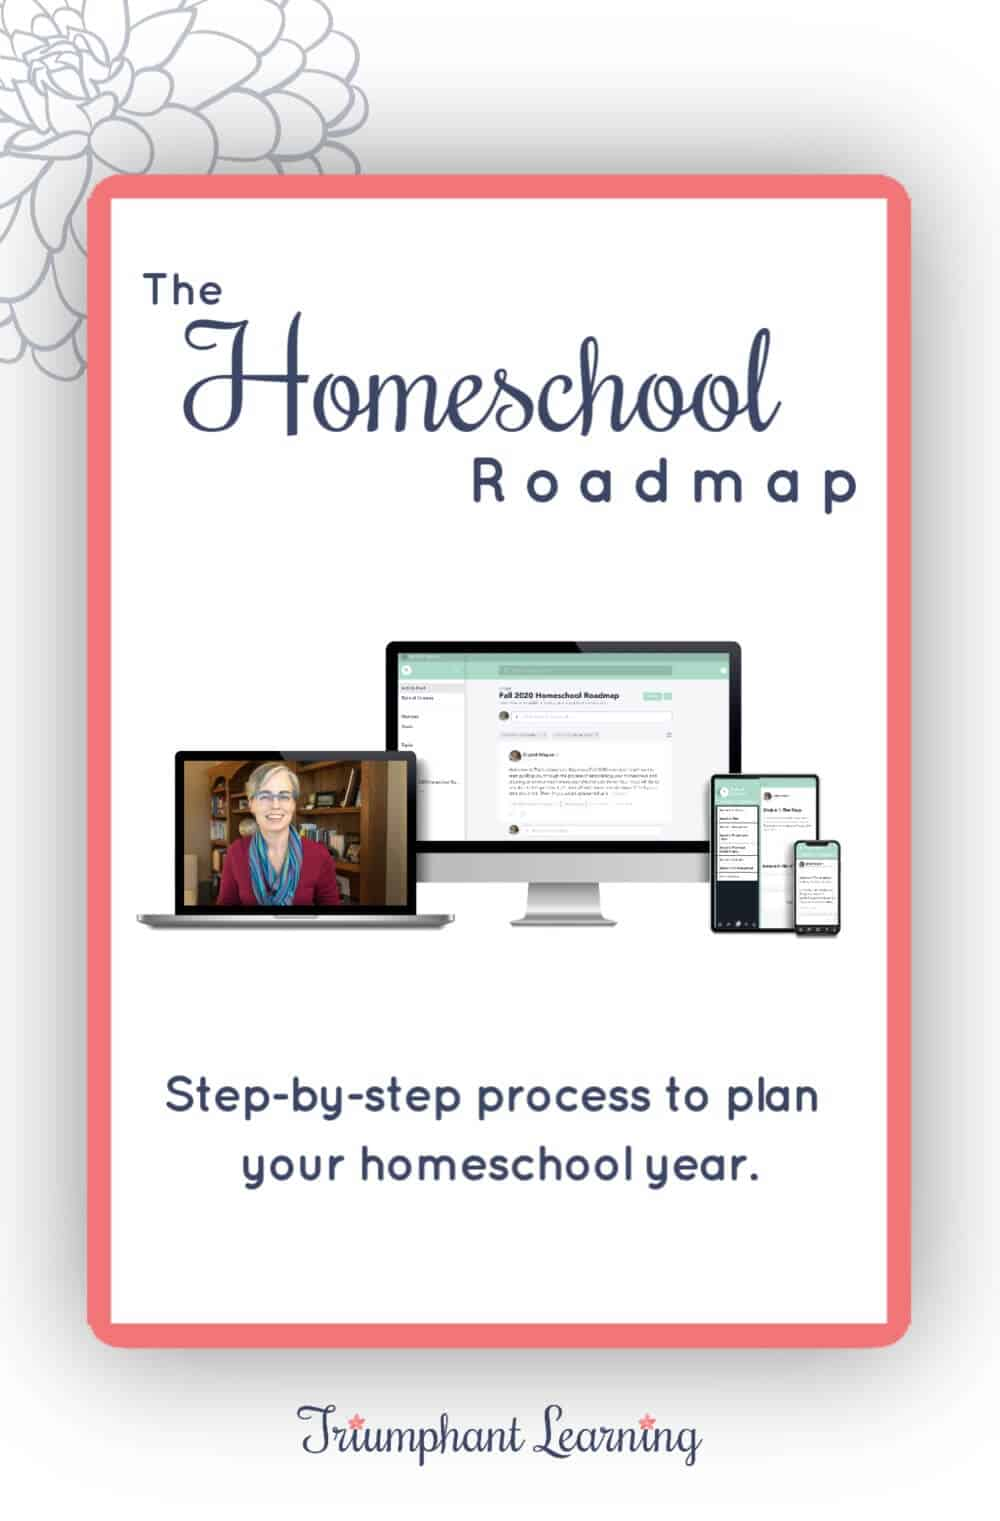 The Homeschool Roadmap is your step-by-step guide to start homeschooling, lay a solid foundation, and manage your homeschool days. via @TriLearning